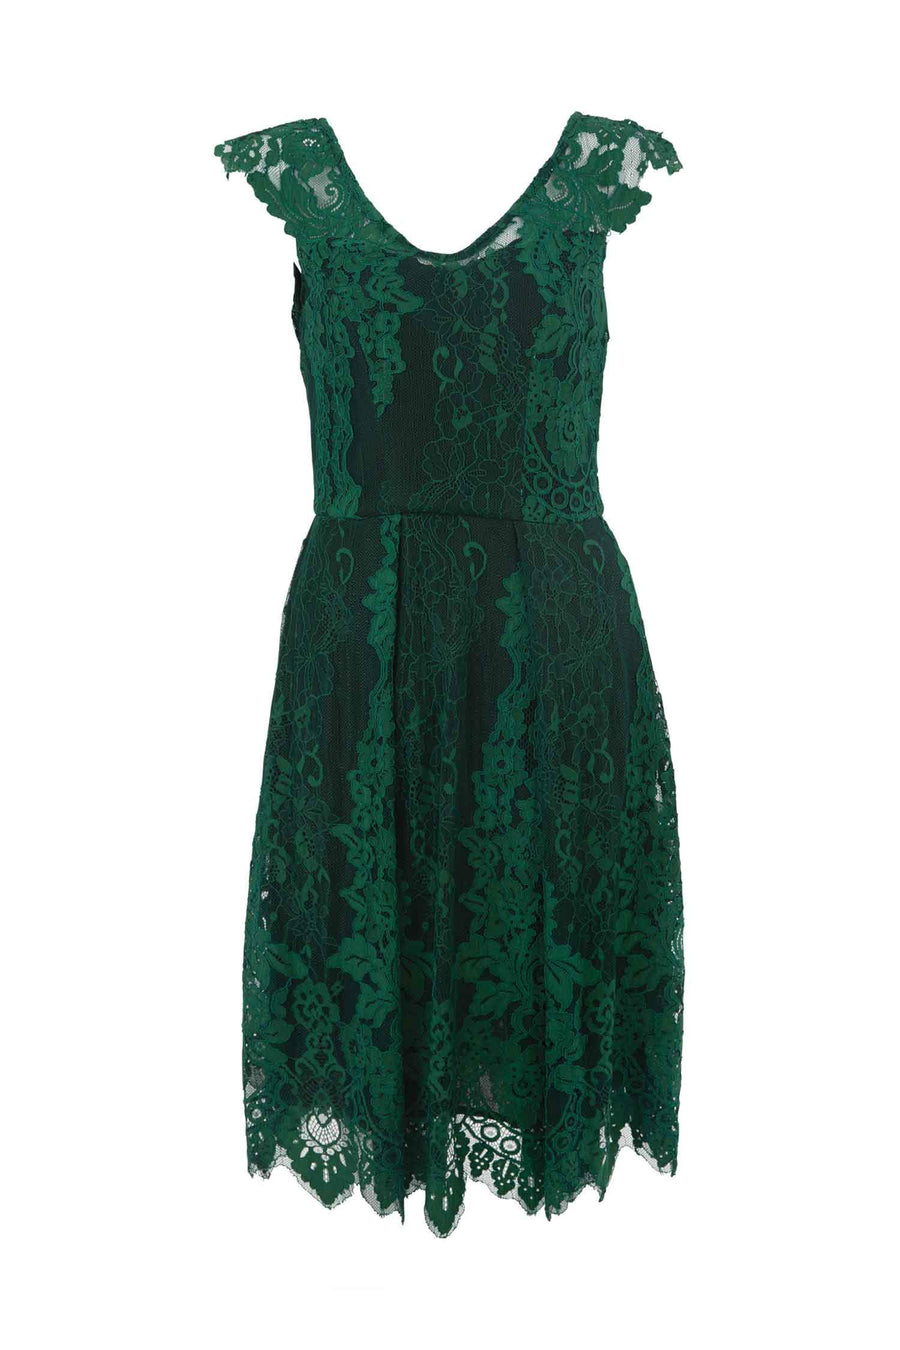 Full Of Lace Dress by Curate Frockaholics.com